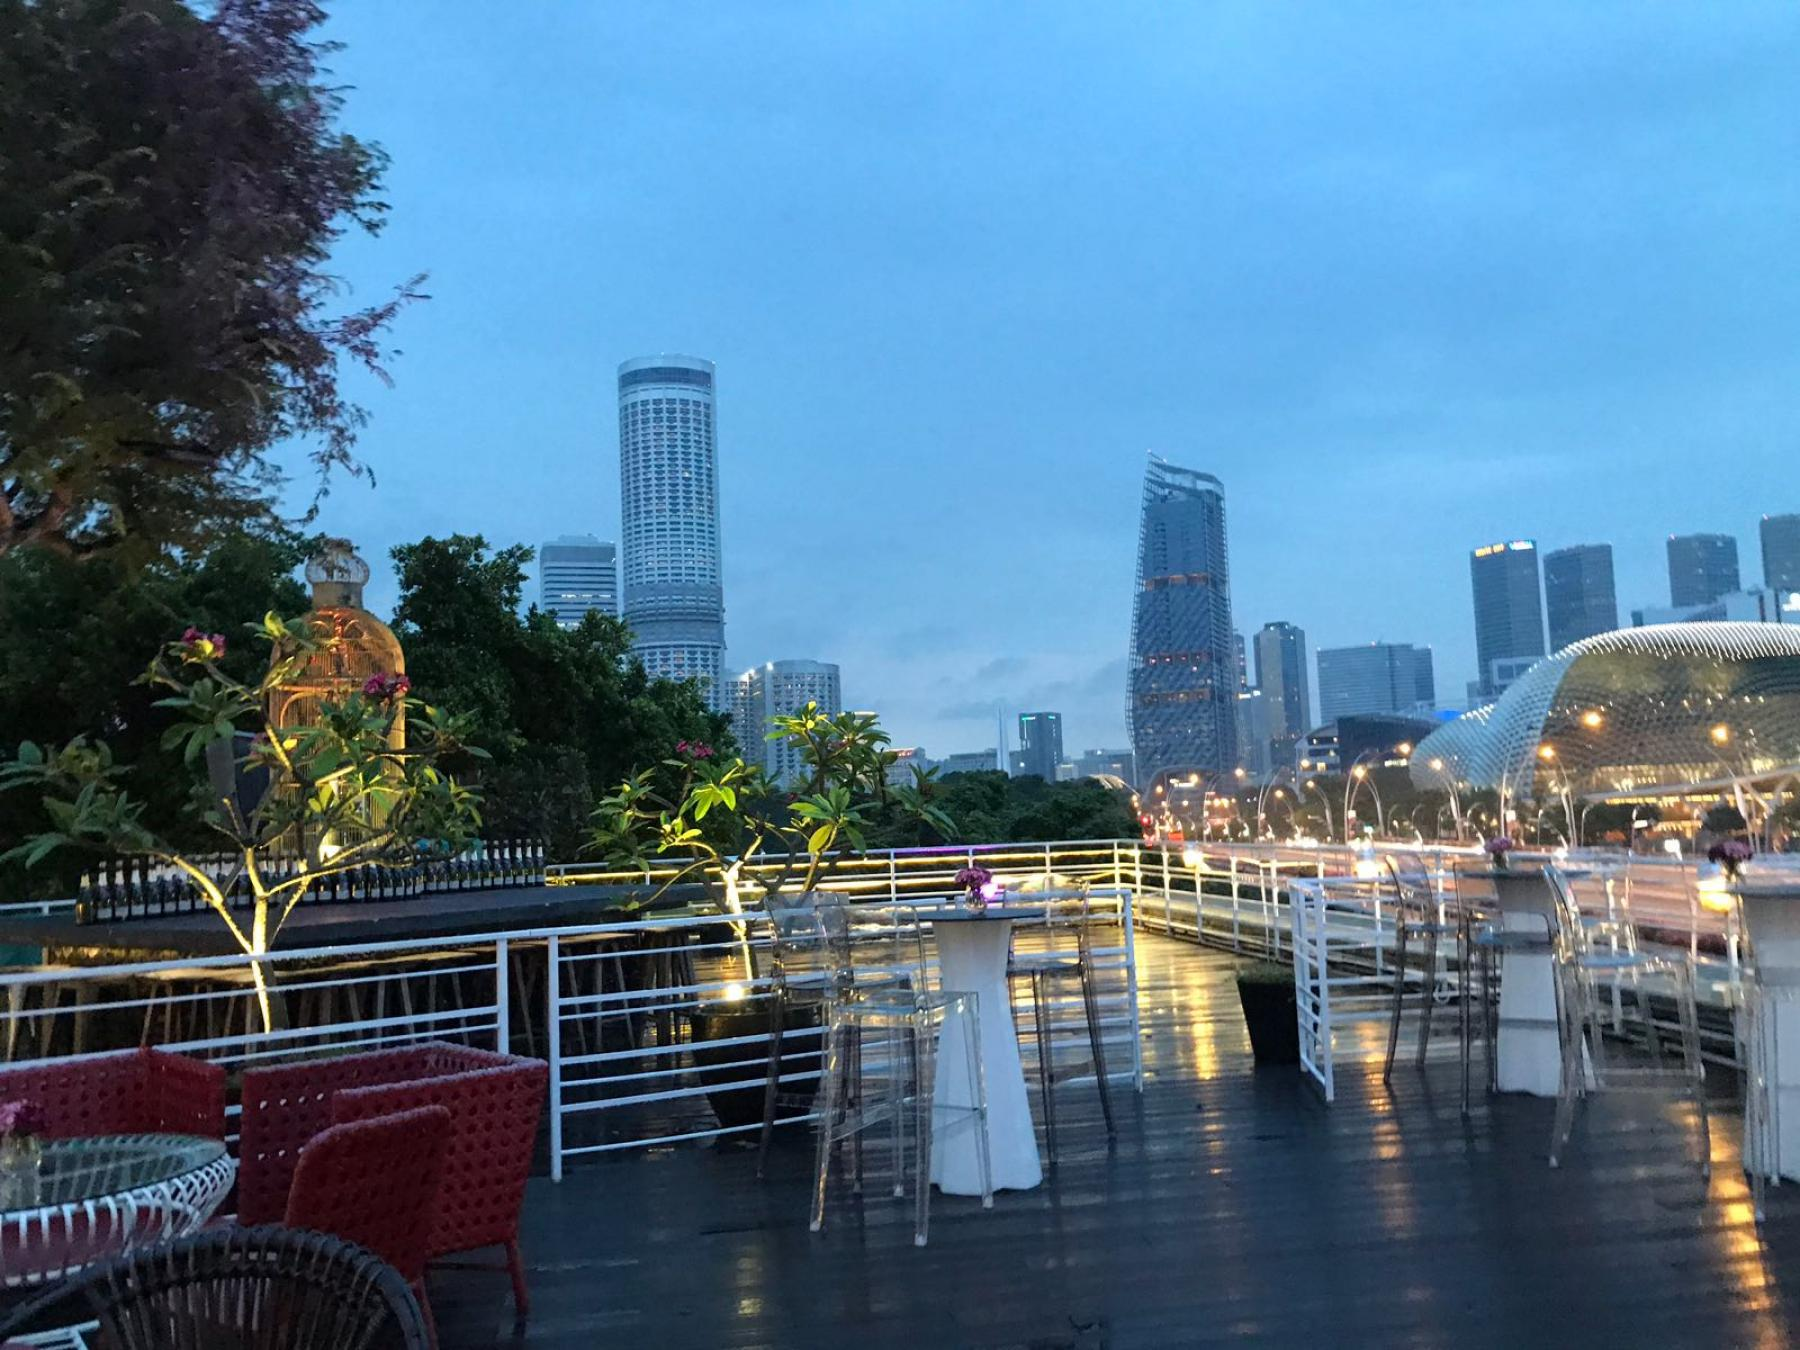 Let's cafes hop over the weekend starting at 11 Collyer Quay, Singapore